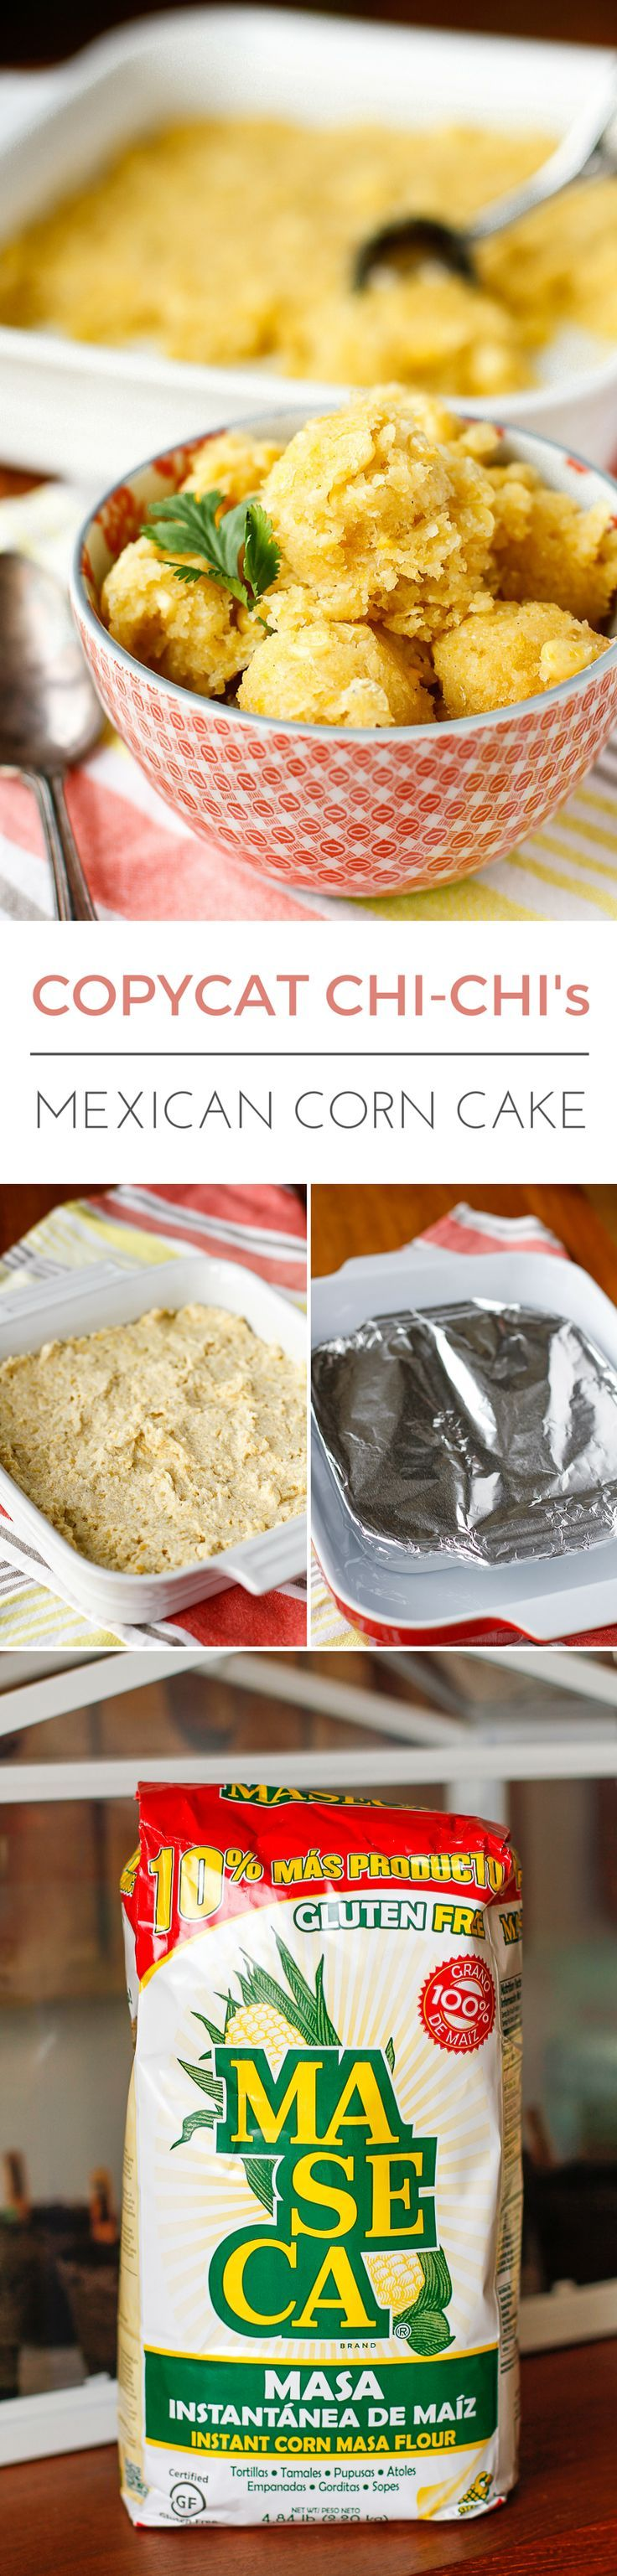 Copycat Chi-Chi's Mexican Sweet Corn Cake -- this delicious sweet corn cake is a copycat of the yummy side that used to be served at Chi-Chi's!   via @unsophisticook on unsophisticook.com